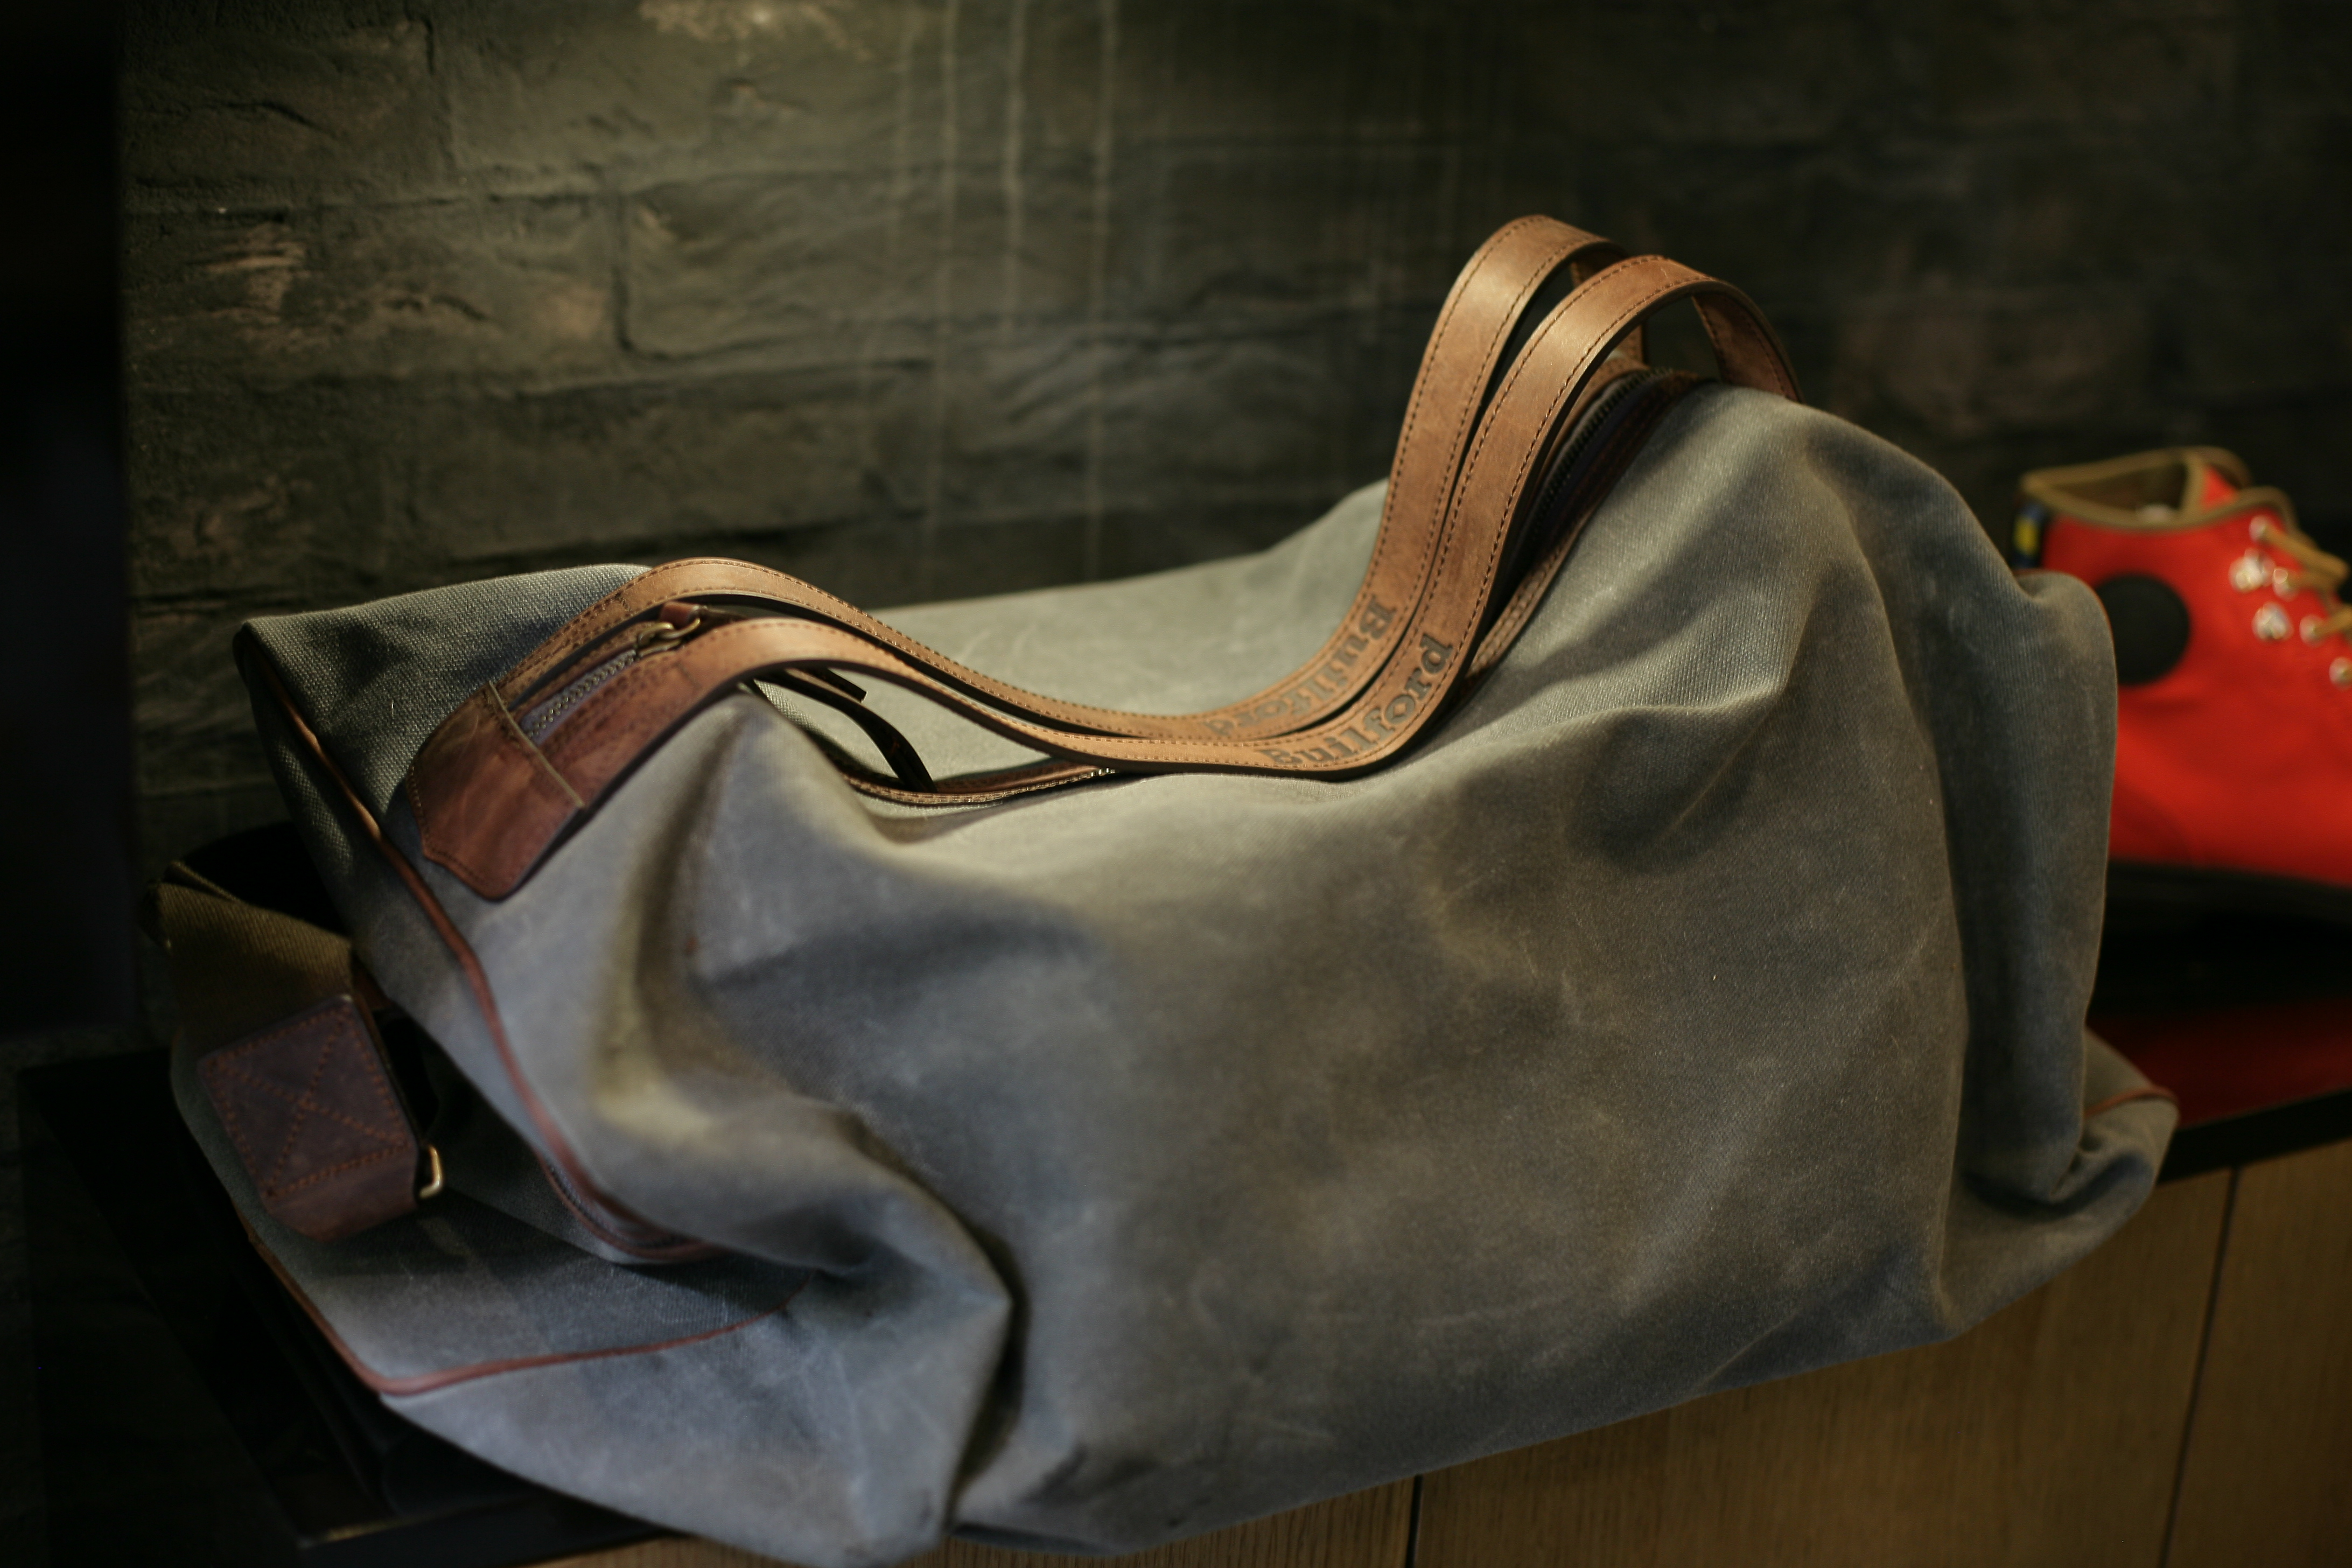 Waxed Canvas Duffle Bags - Good for Travel | D. Editor